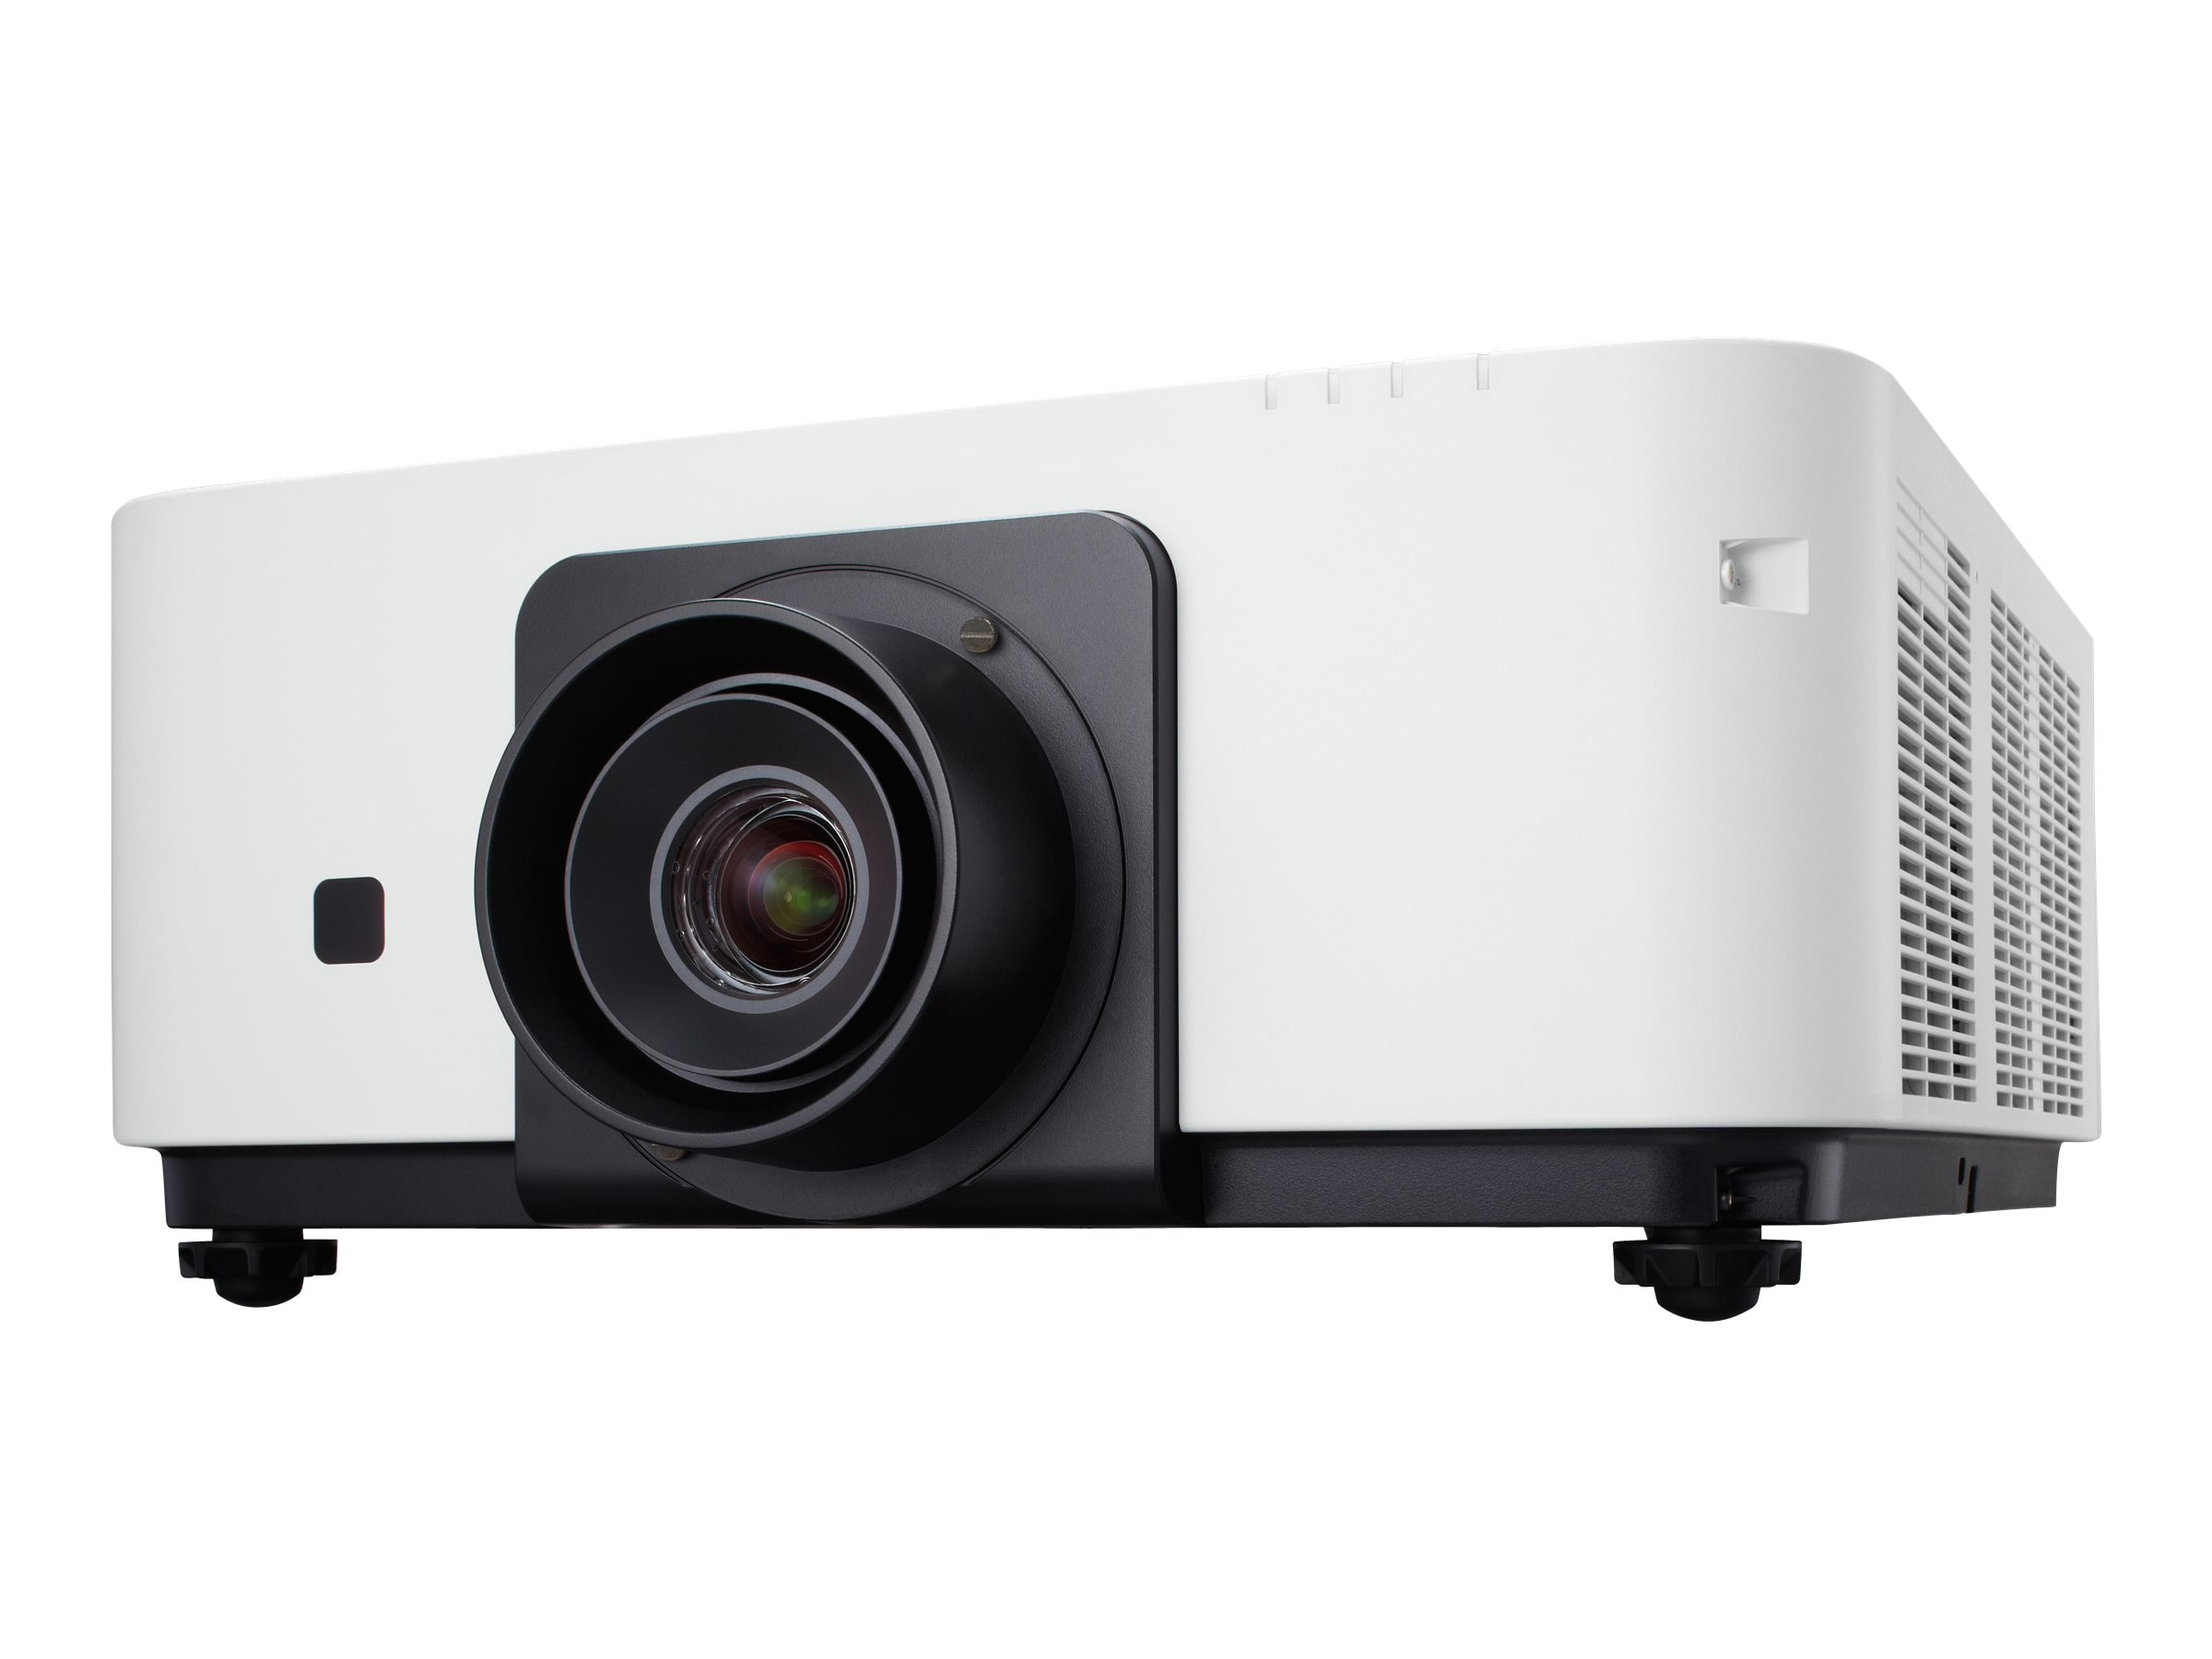 NEC PX602UL WUXGA DLP Projector, 6000 Lumens, White, NP-PX602UL-WH, 18111631, Projectors